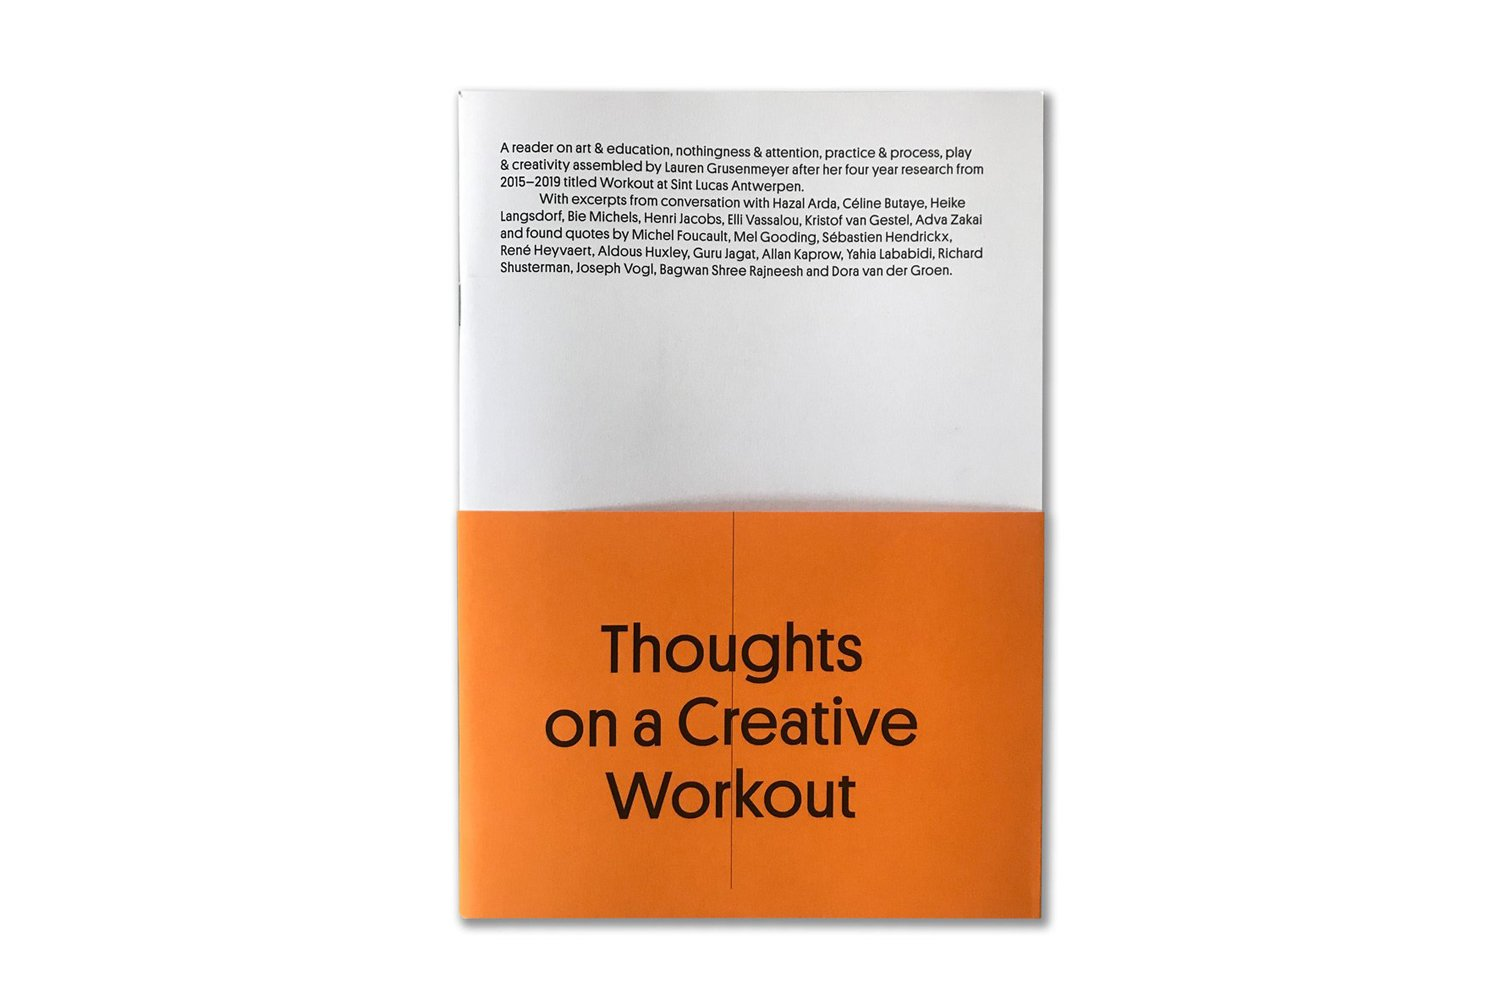 Thoughts on a creative workout